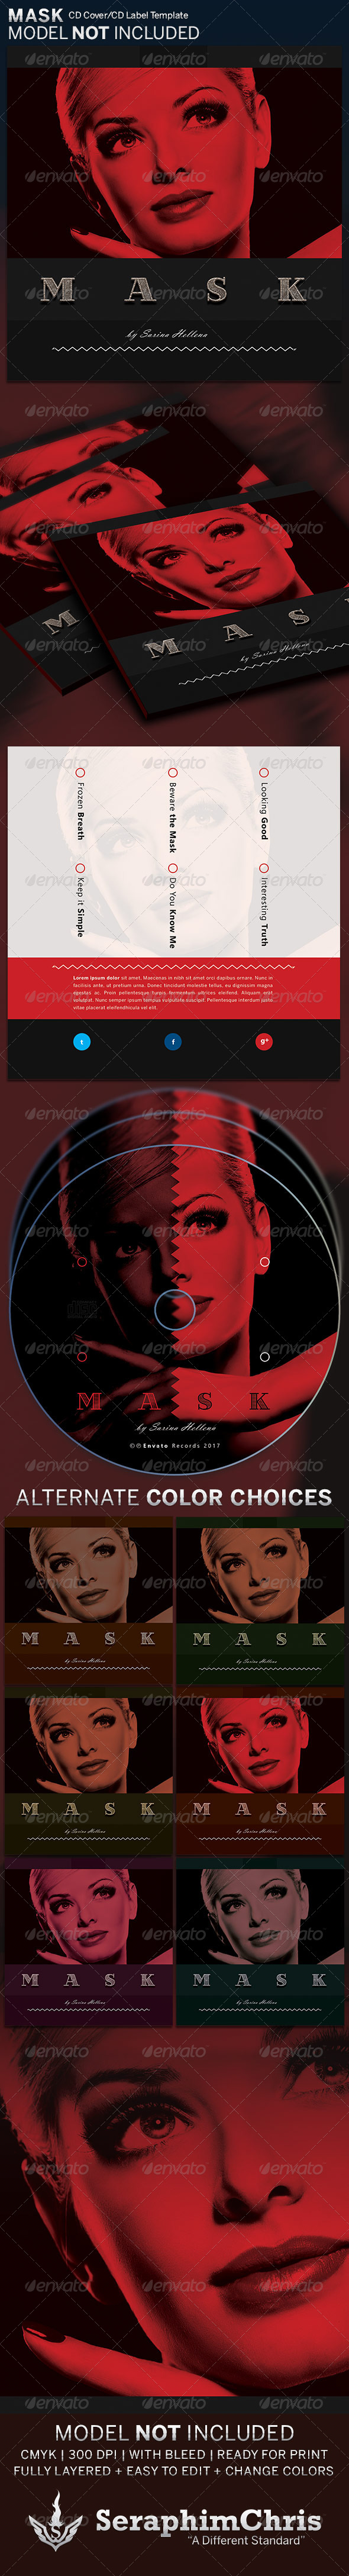 GraphicRiver Mask CD Cover Artwork Template 6397810